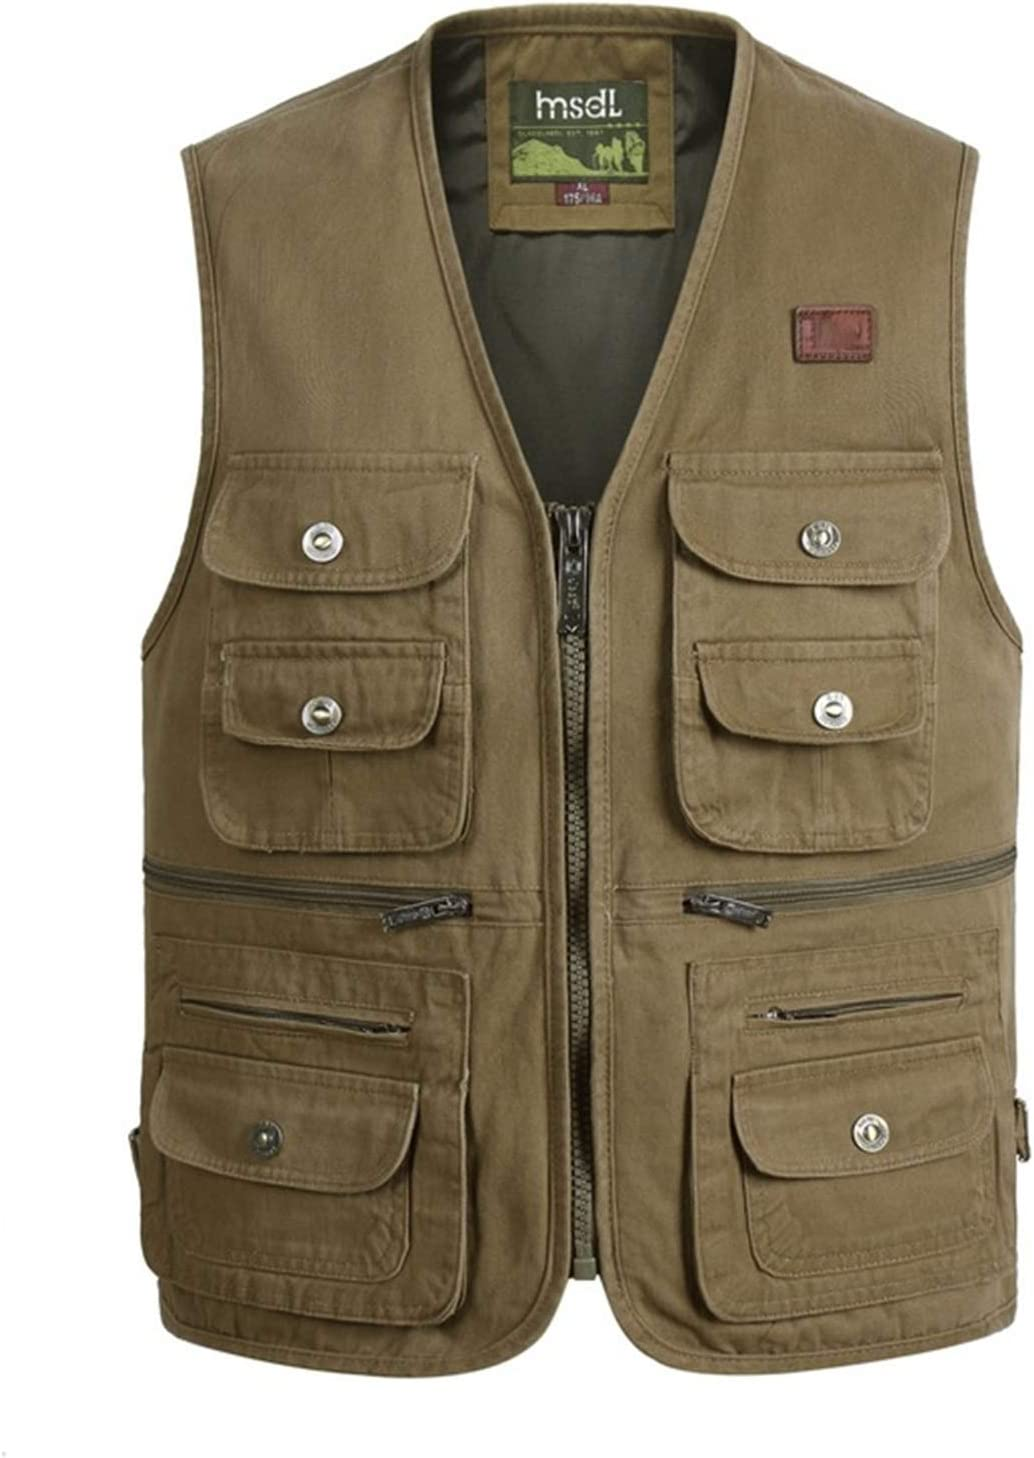 Outdoor Leisure Fishing Vest,Sport Photography Vests, Middle-Aged and Elderly Men's Cotton Clothing,1,3XL